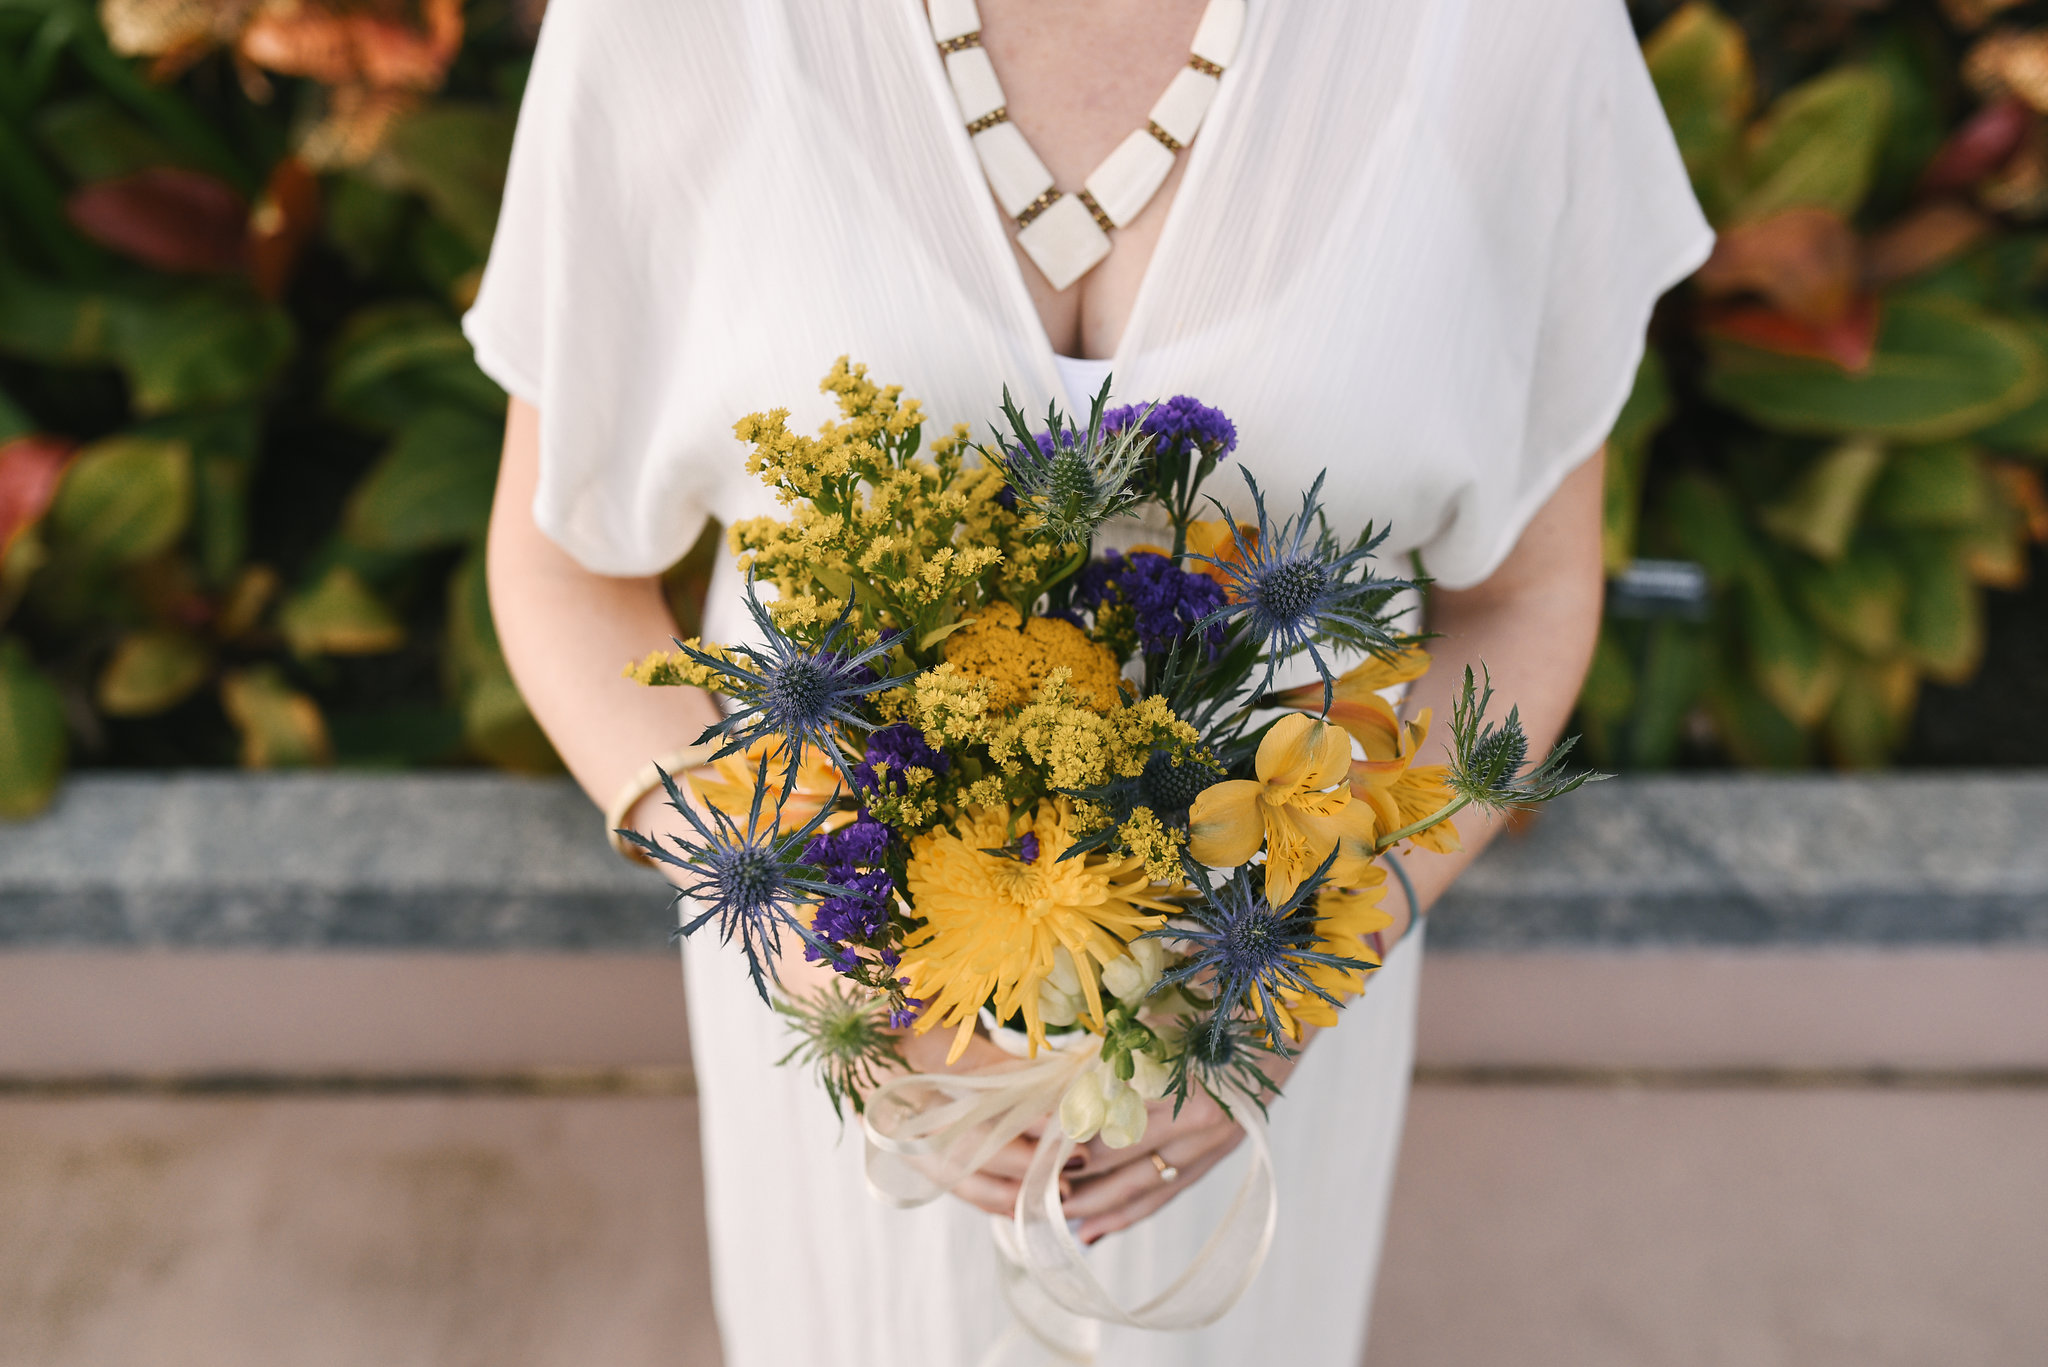 Rawlings Conservatory, Druid Hill Park, Intimate Wedding, Nature, Baltimore Wedding Photographer, Romantic, Classic, Bridal Bouquet, Yellow and Purple Flowers, Statement Necklace